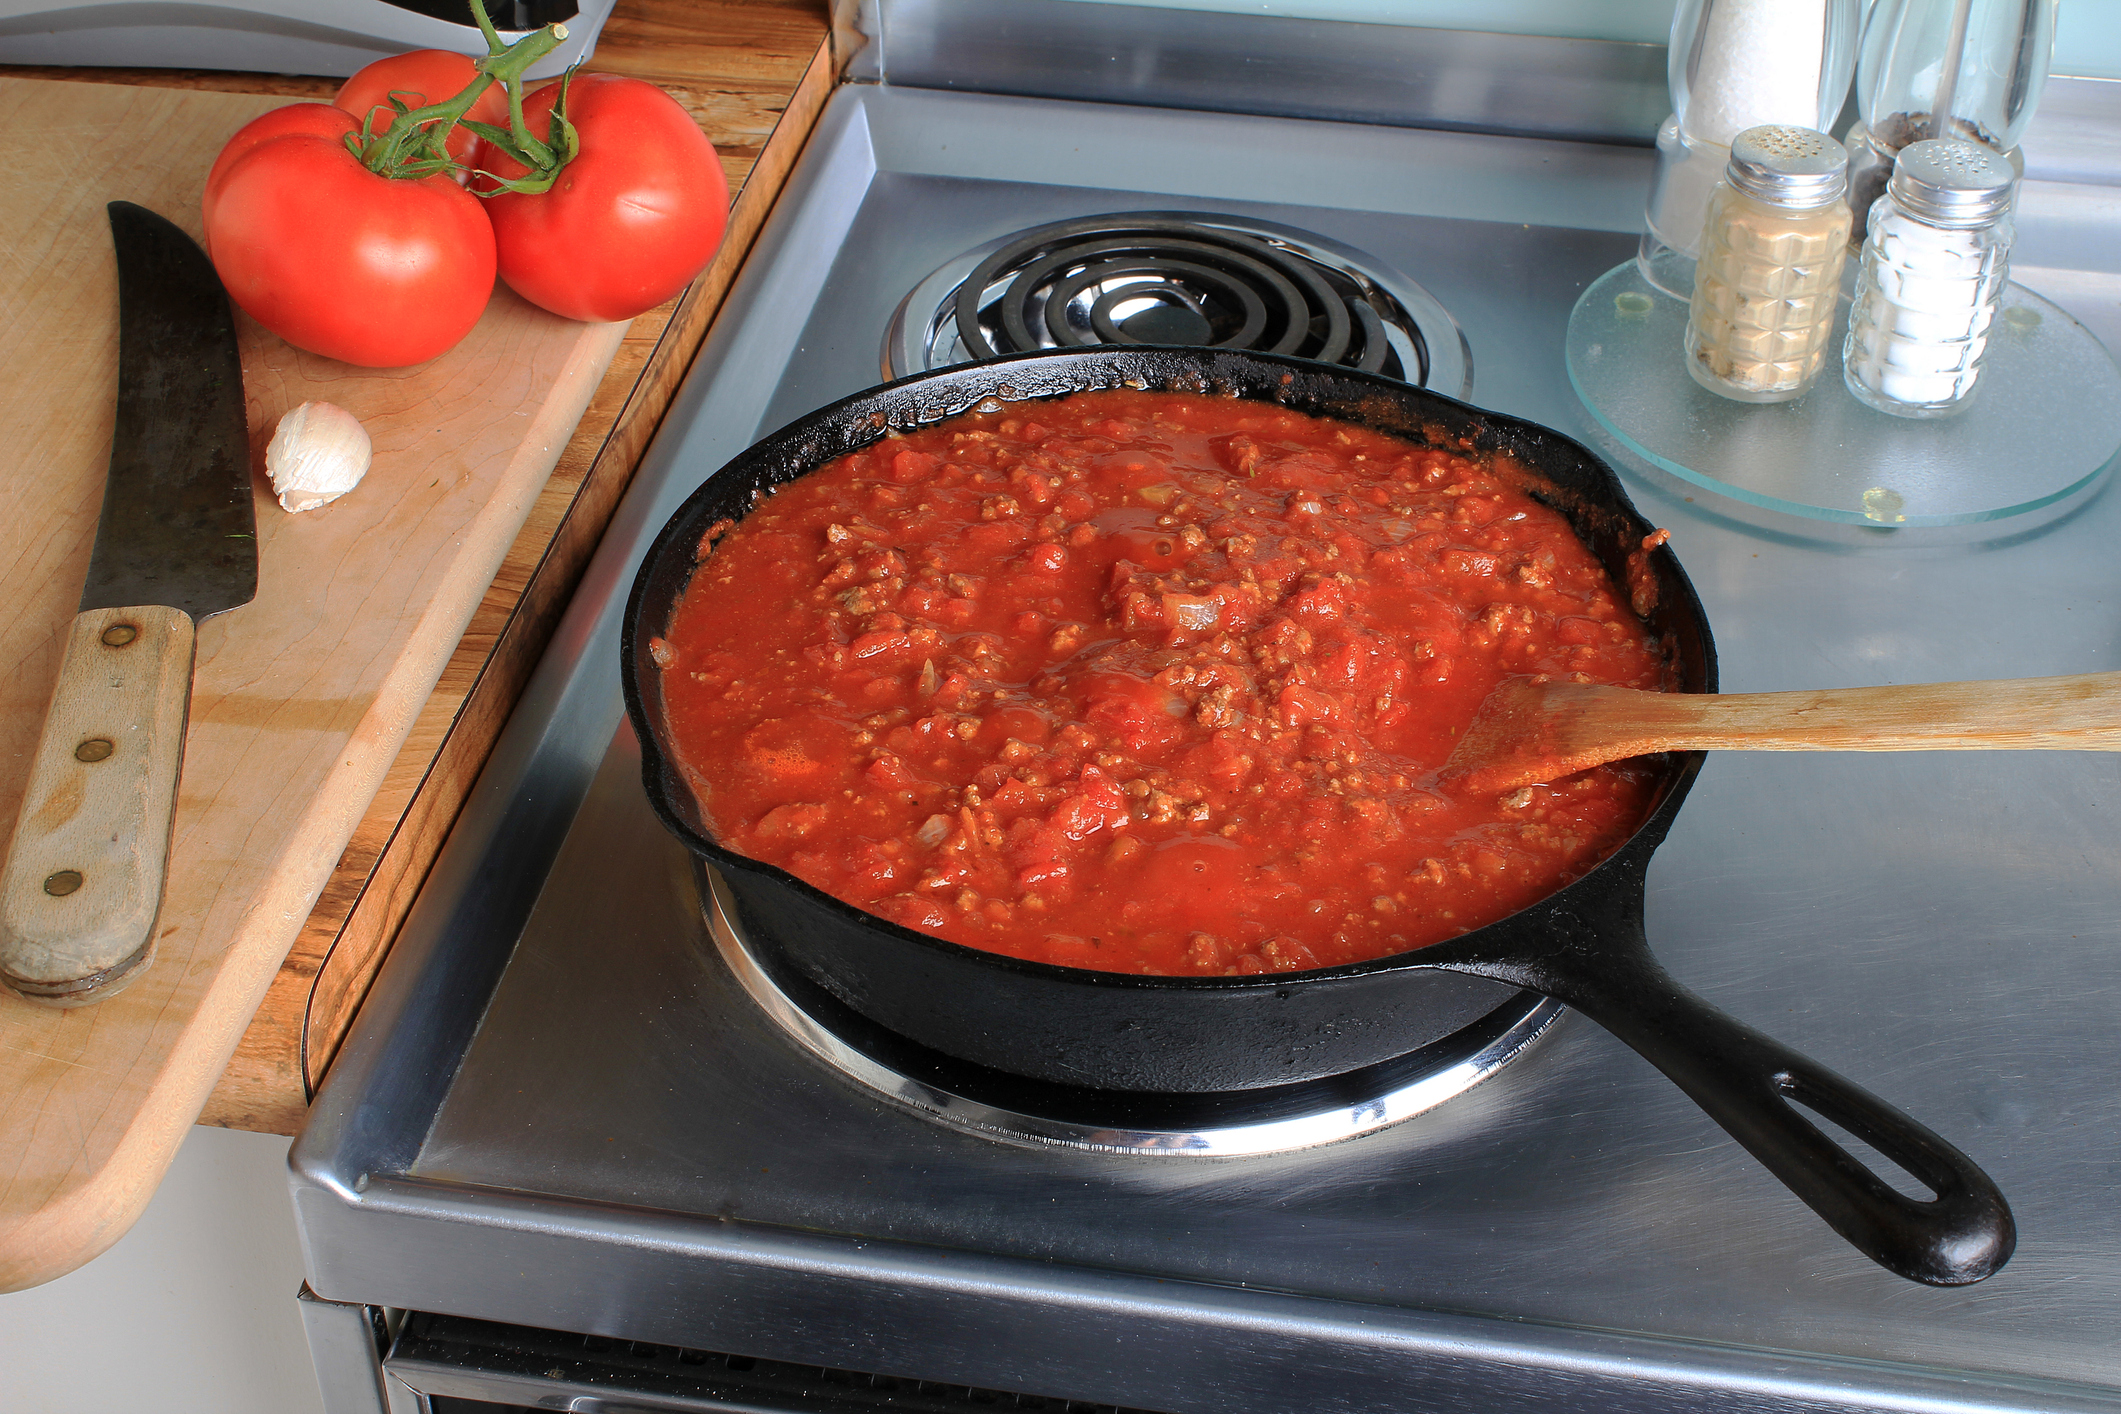 Tomato and Meat Spaghetti Sauce simmering in cast iron skillet atop Stainless Steel electric stove with tomatoes and garlic on cutting board with large kitchen knife.